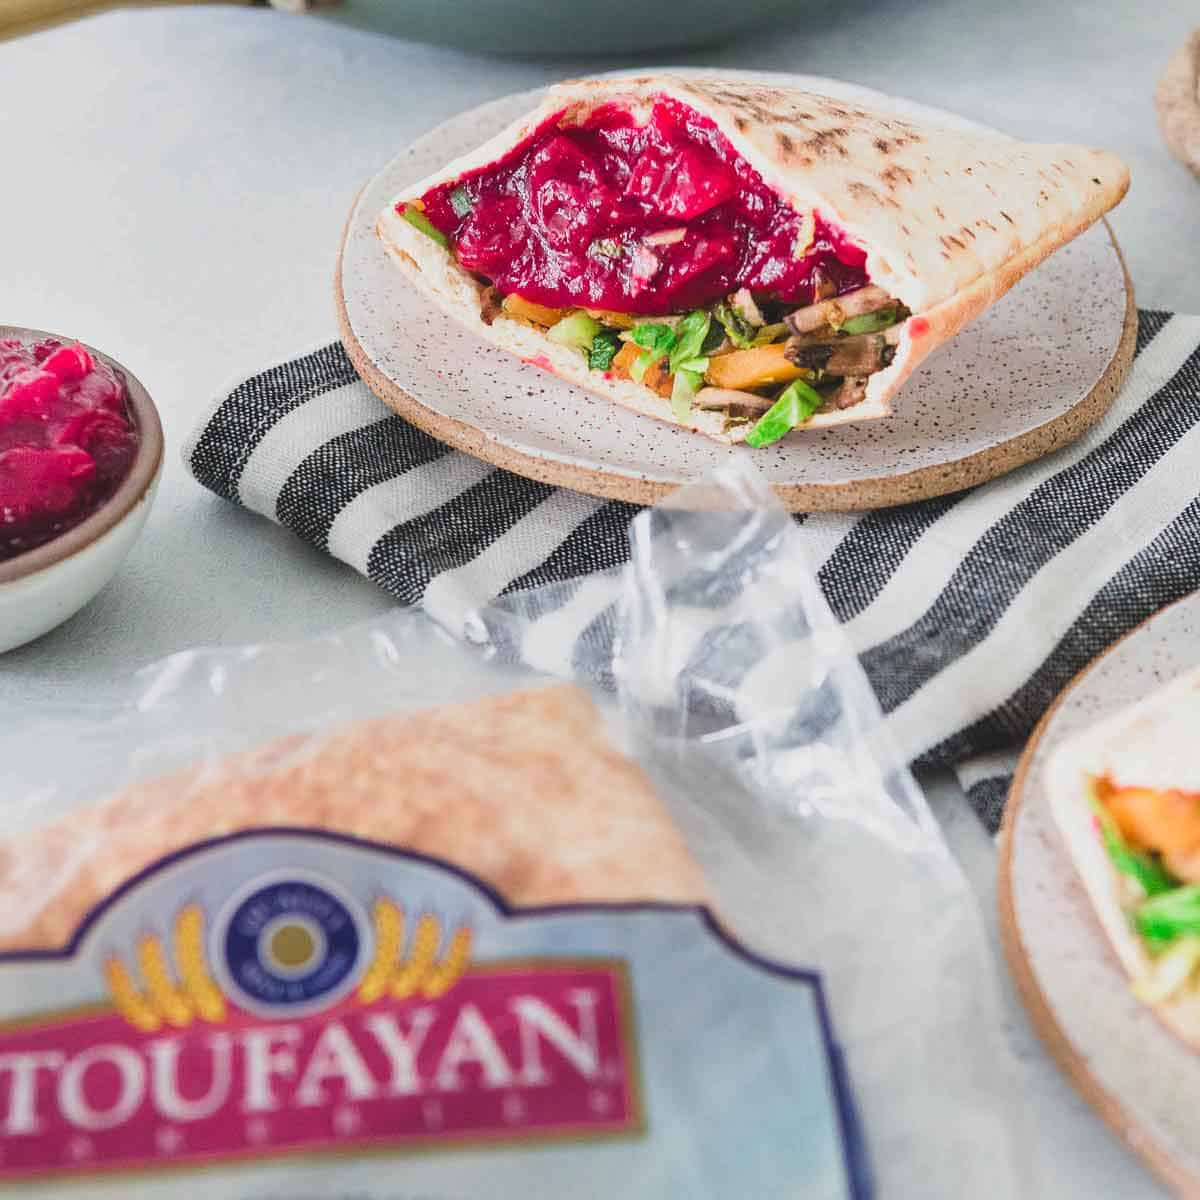 Toufayan Smart Pockets are the perfect pita bread for using up leftover Thanksgiving vegetables and cranberry sauce.